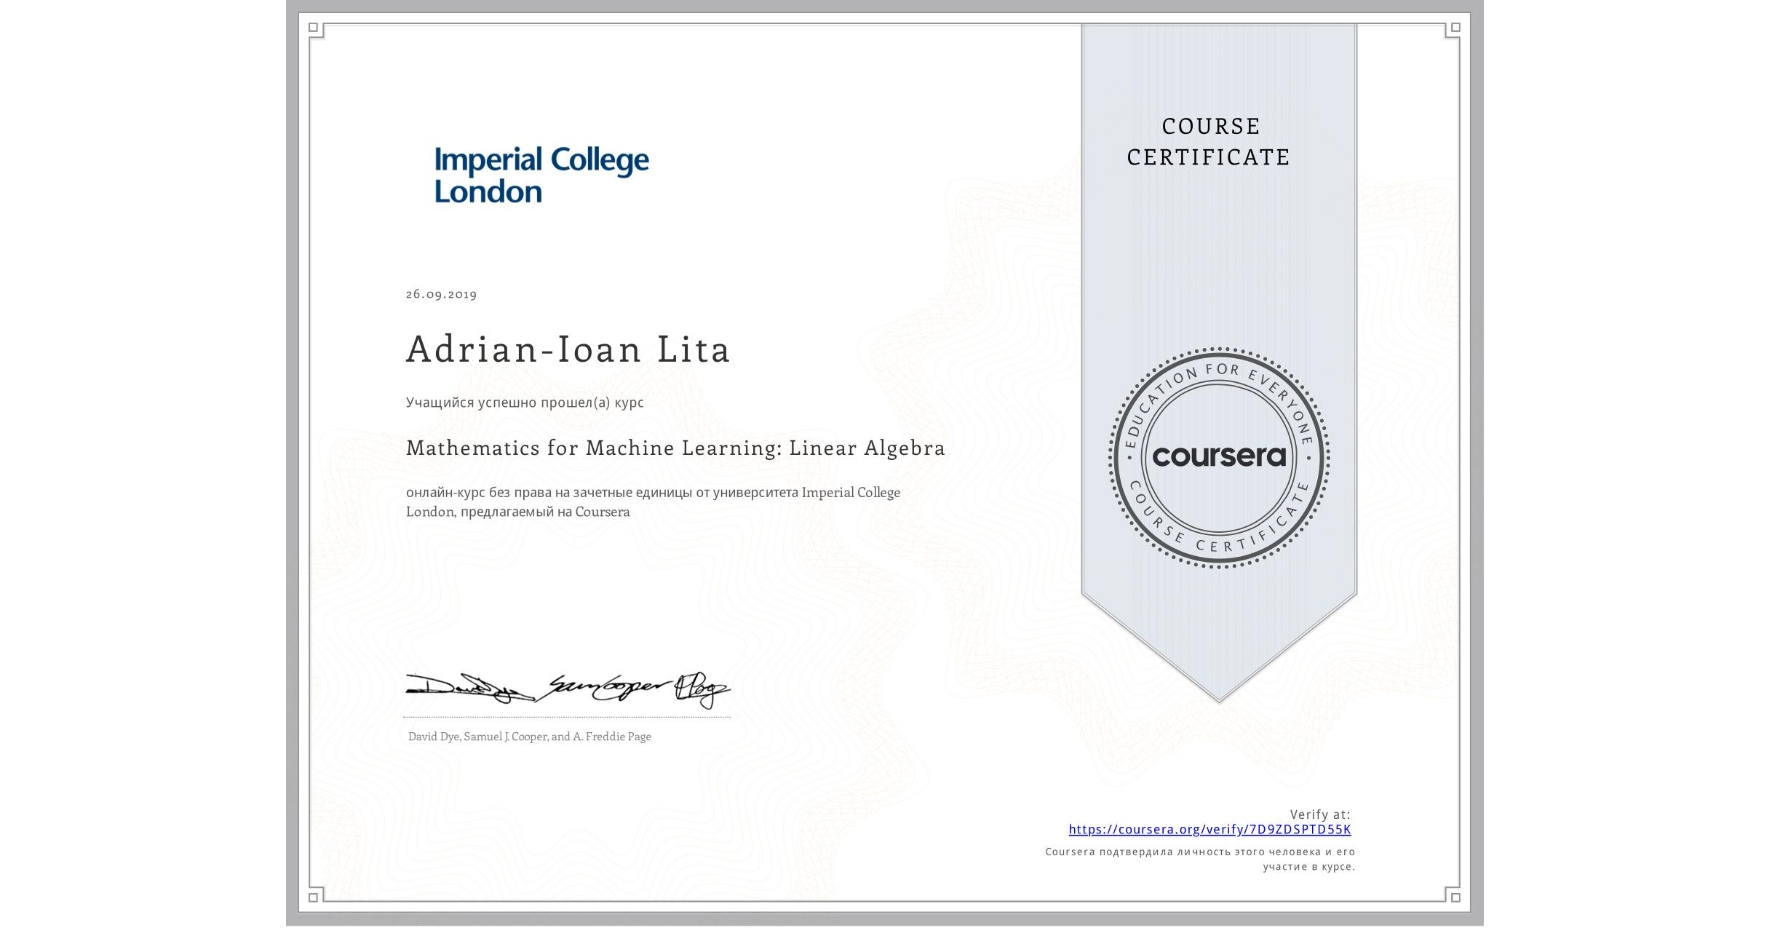 View certificate for Adrian-Ioan Lita, Mathematics for Machine Learning: Linear Algebra, an online non-credit course authorized by Imperial College London and offered through Coursera